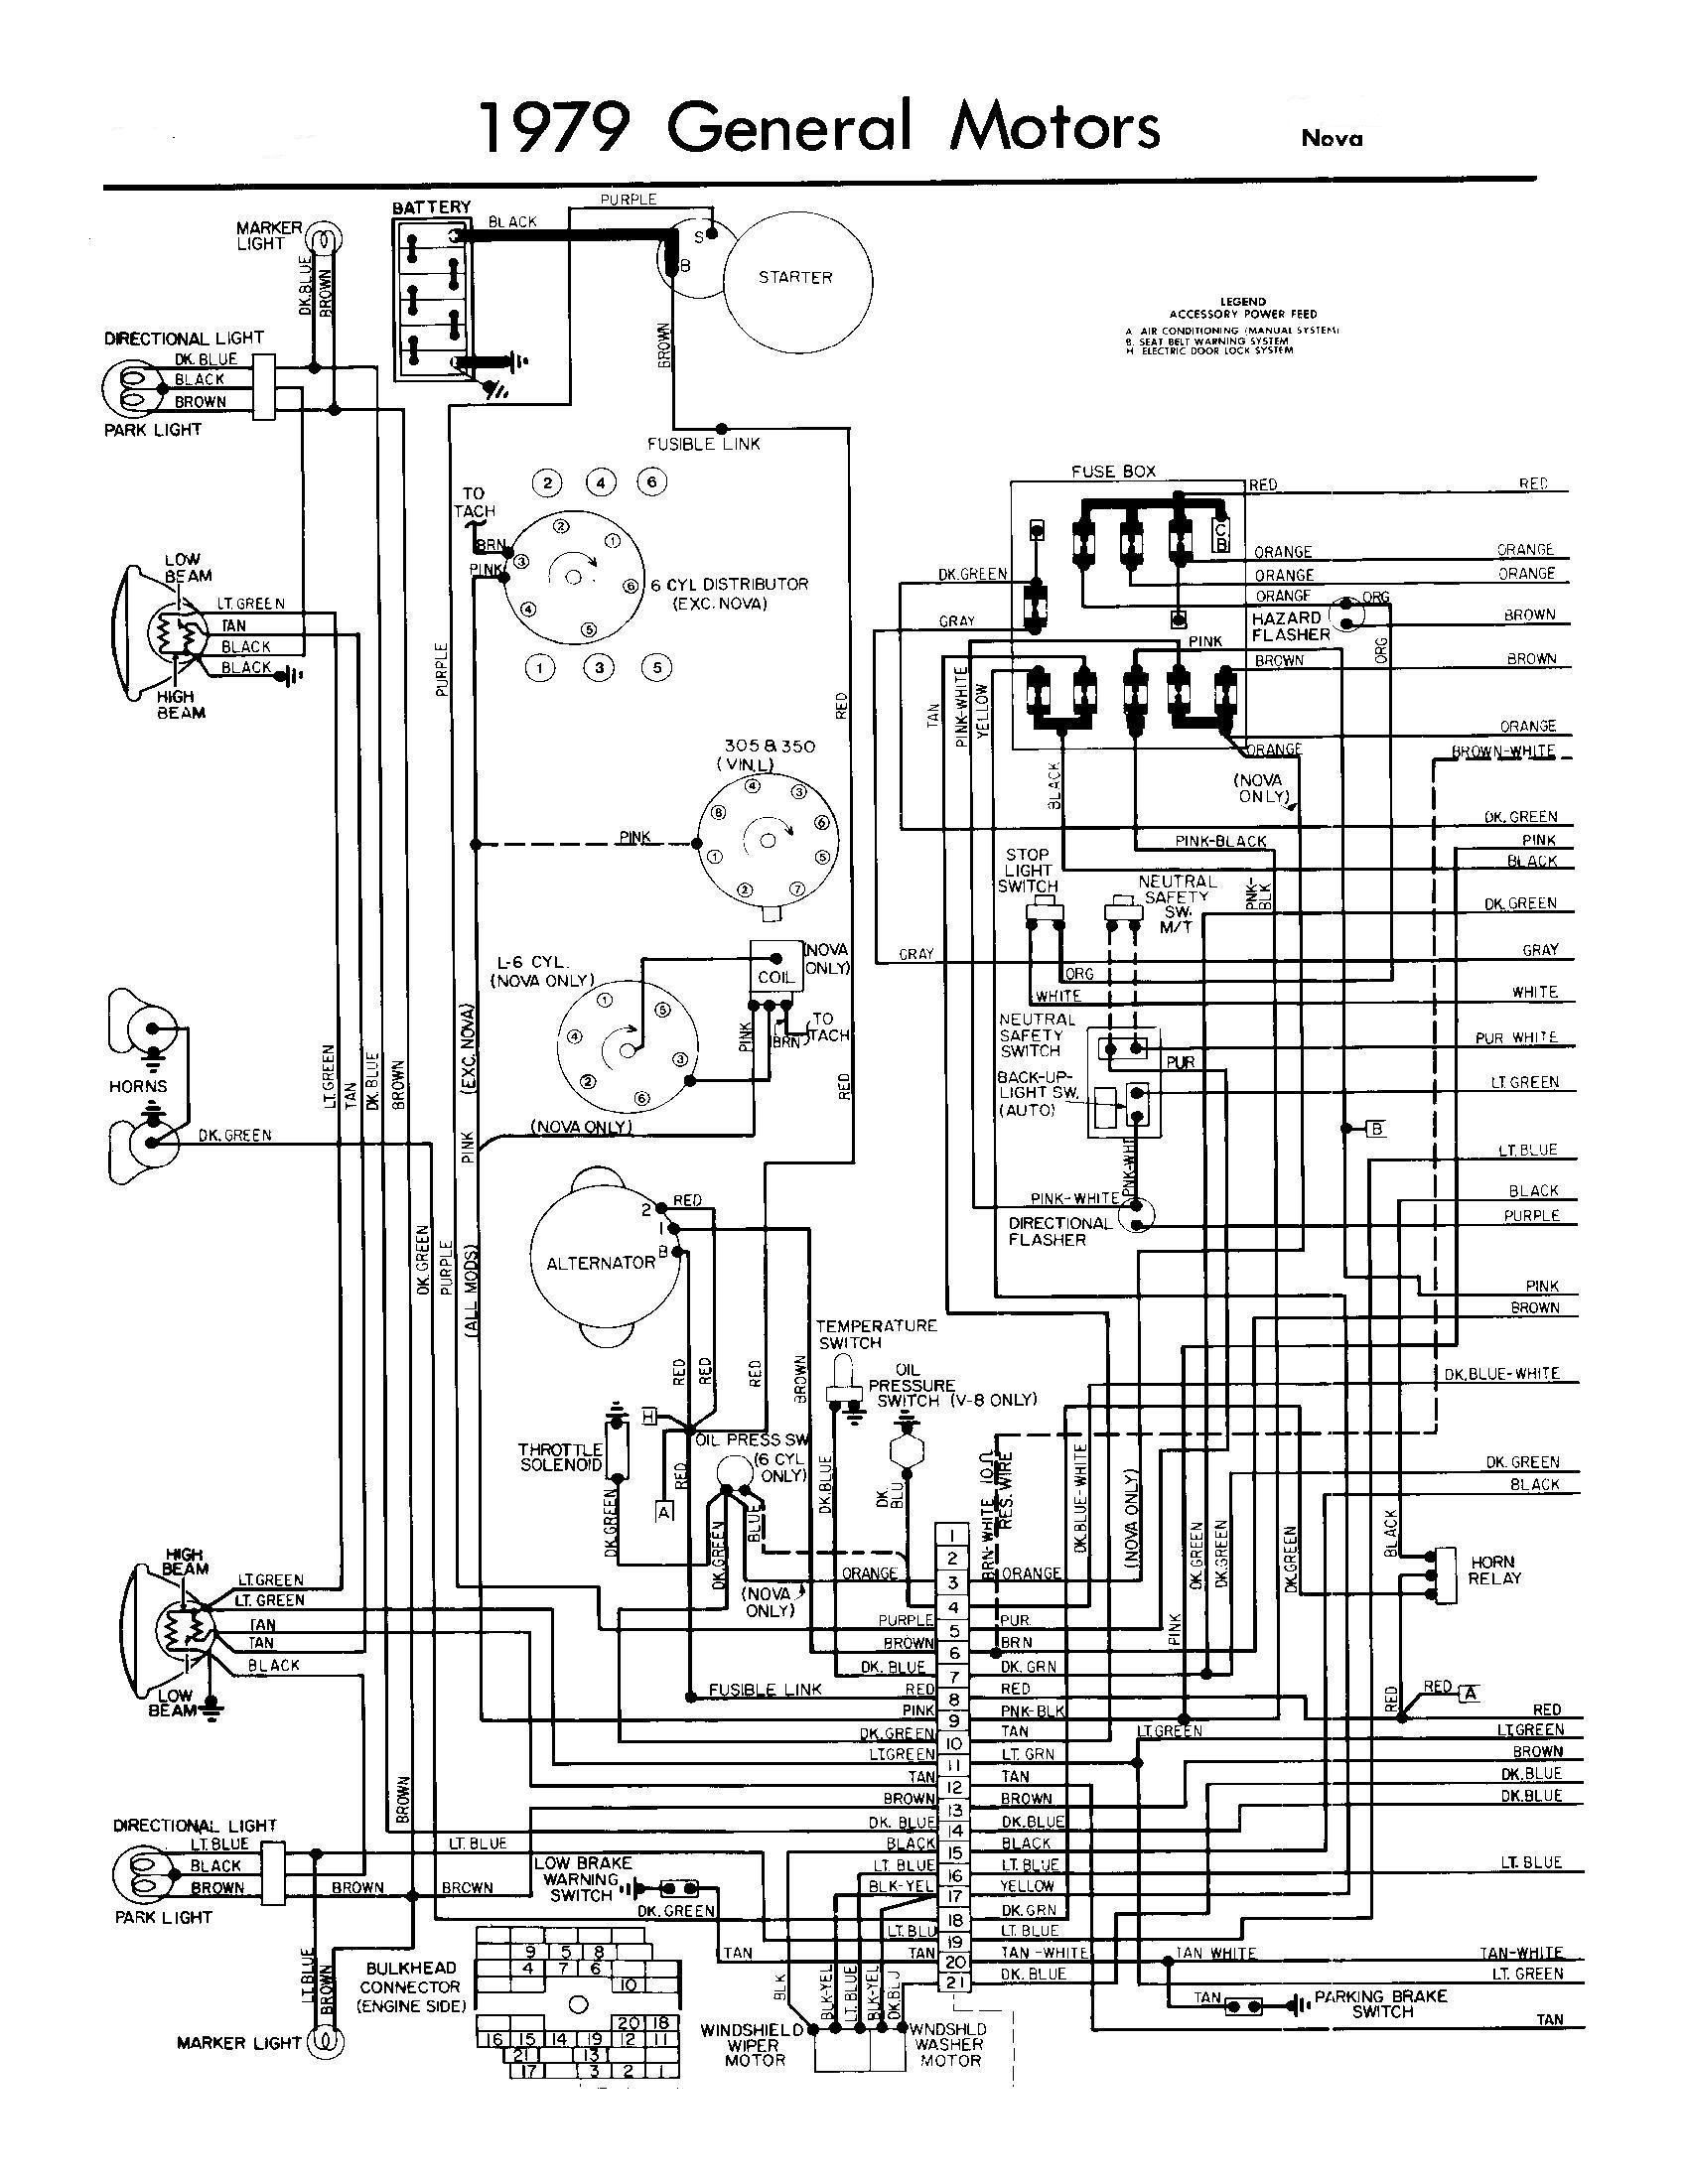 all generation wiring schematics chevy nova forum custom 79 gmc rh pinterest ca Wiring Schematic Symbols Wiring Schematic Symbols